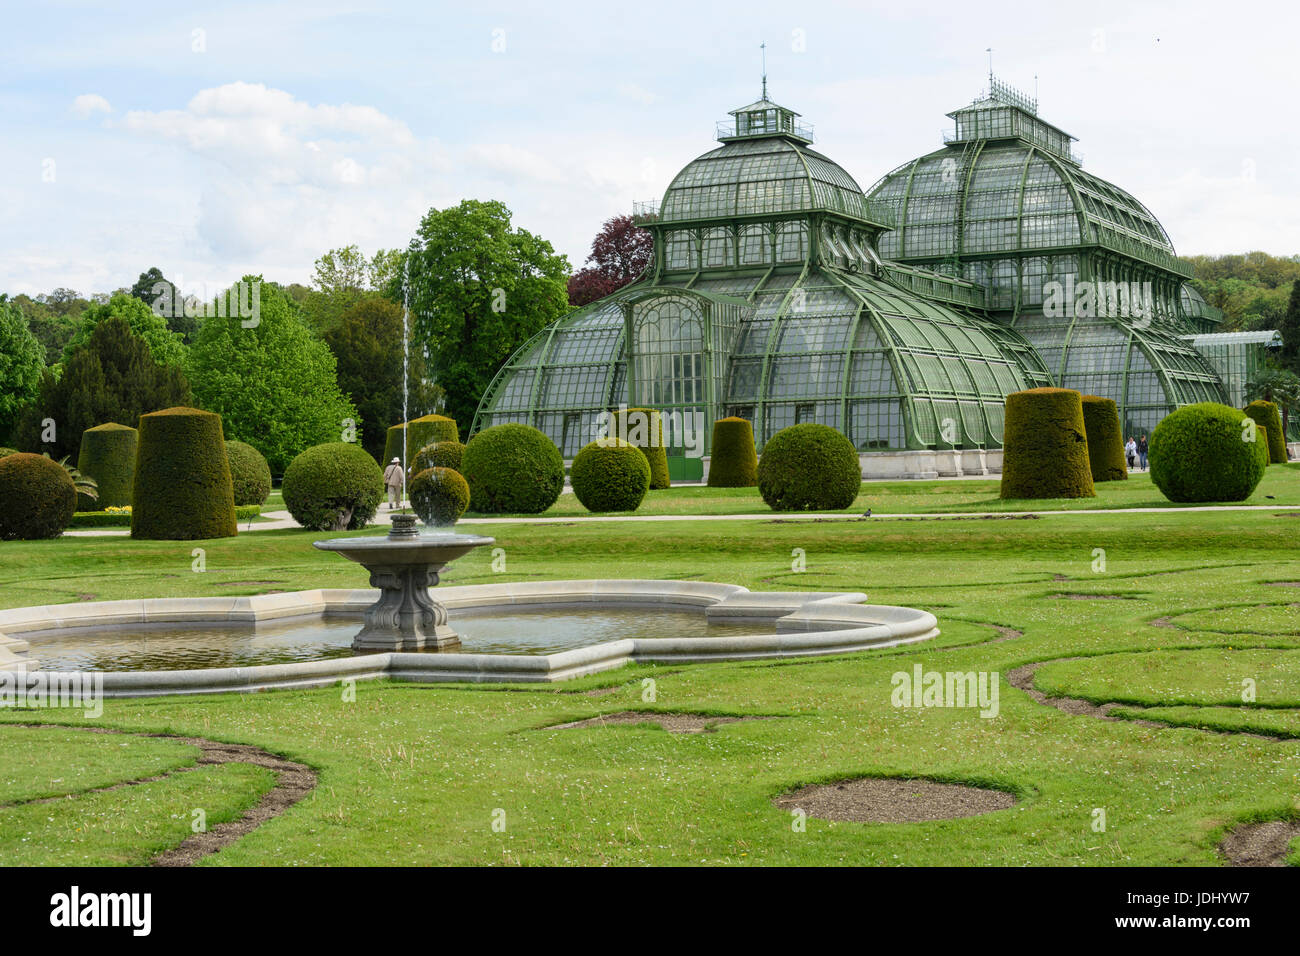 Austria. Vienna. The Palm pavilion in W part of the gardens of Schönbrunn Palace - Stock Image